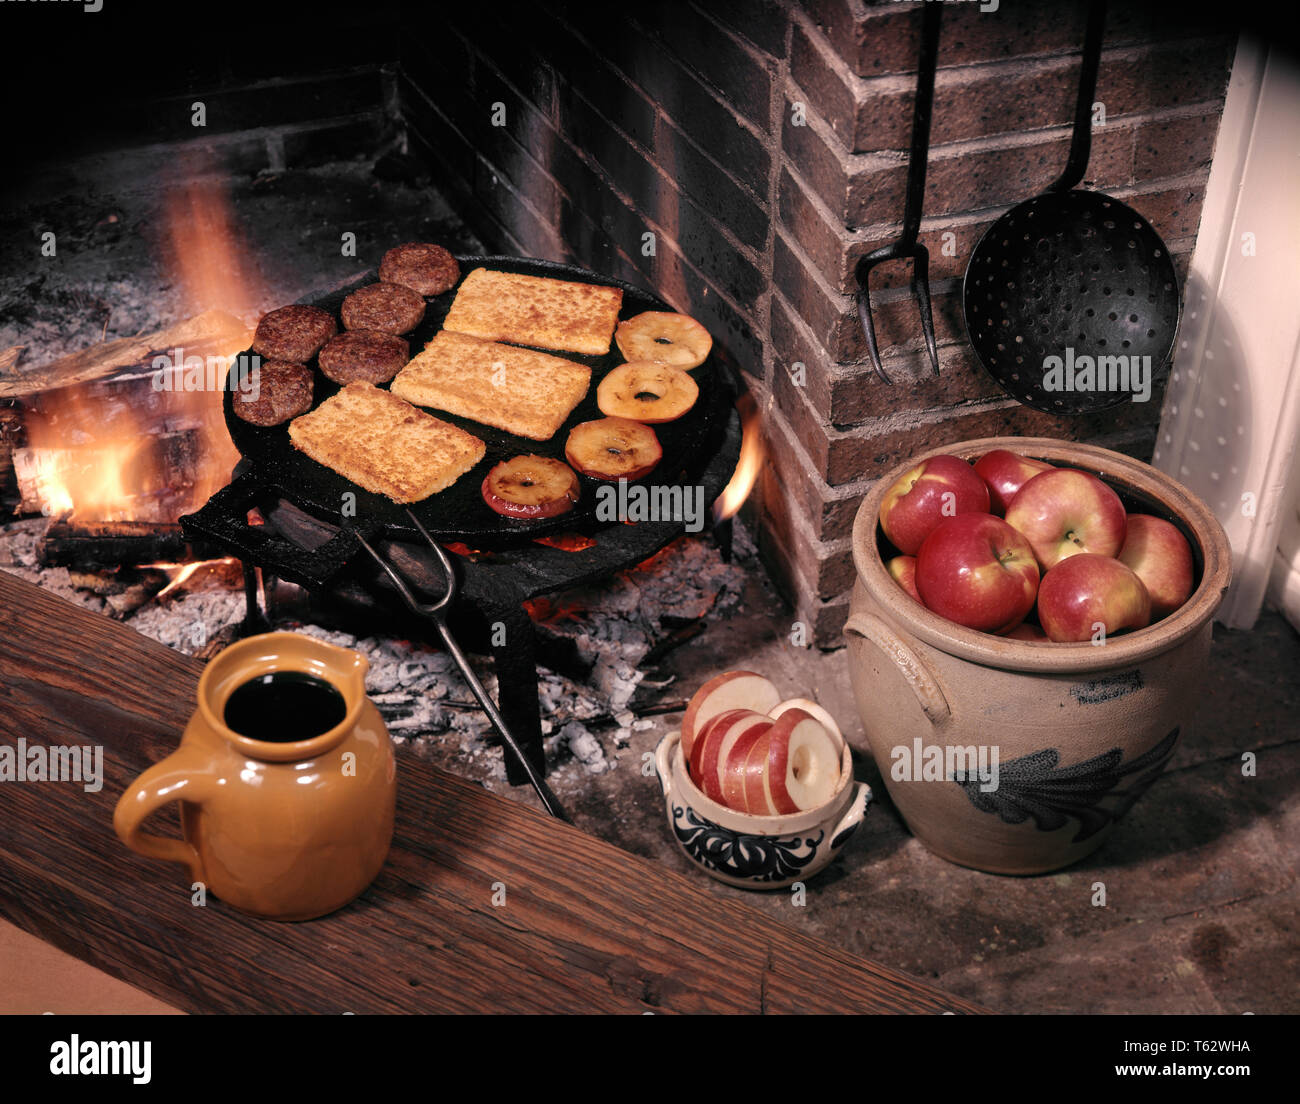 1970s 1770s COLONIAL AMERICAN BREAKFAST MEAL HASTY PUDDING CORN MUSH BEING FRIED WITH APPLE RINGS SAUSAGE ON FIREPLACE GRILL - kf38885 FRT001 HARS EARLY KNOWLEDGE LADLE ON 1776 PORK WAR OF INDEPENDENCE CONCEPTUAL STILL LIFE STYLISH REVOLT AMERICAN REVOLUTIONARY WAR 1770s COLONIES PRIMITIVE PUDDING SAUSAGE OLD FASHIONED YANKEE DOODLE - Stock Image